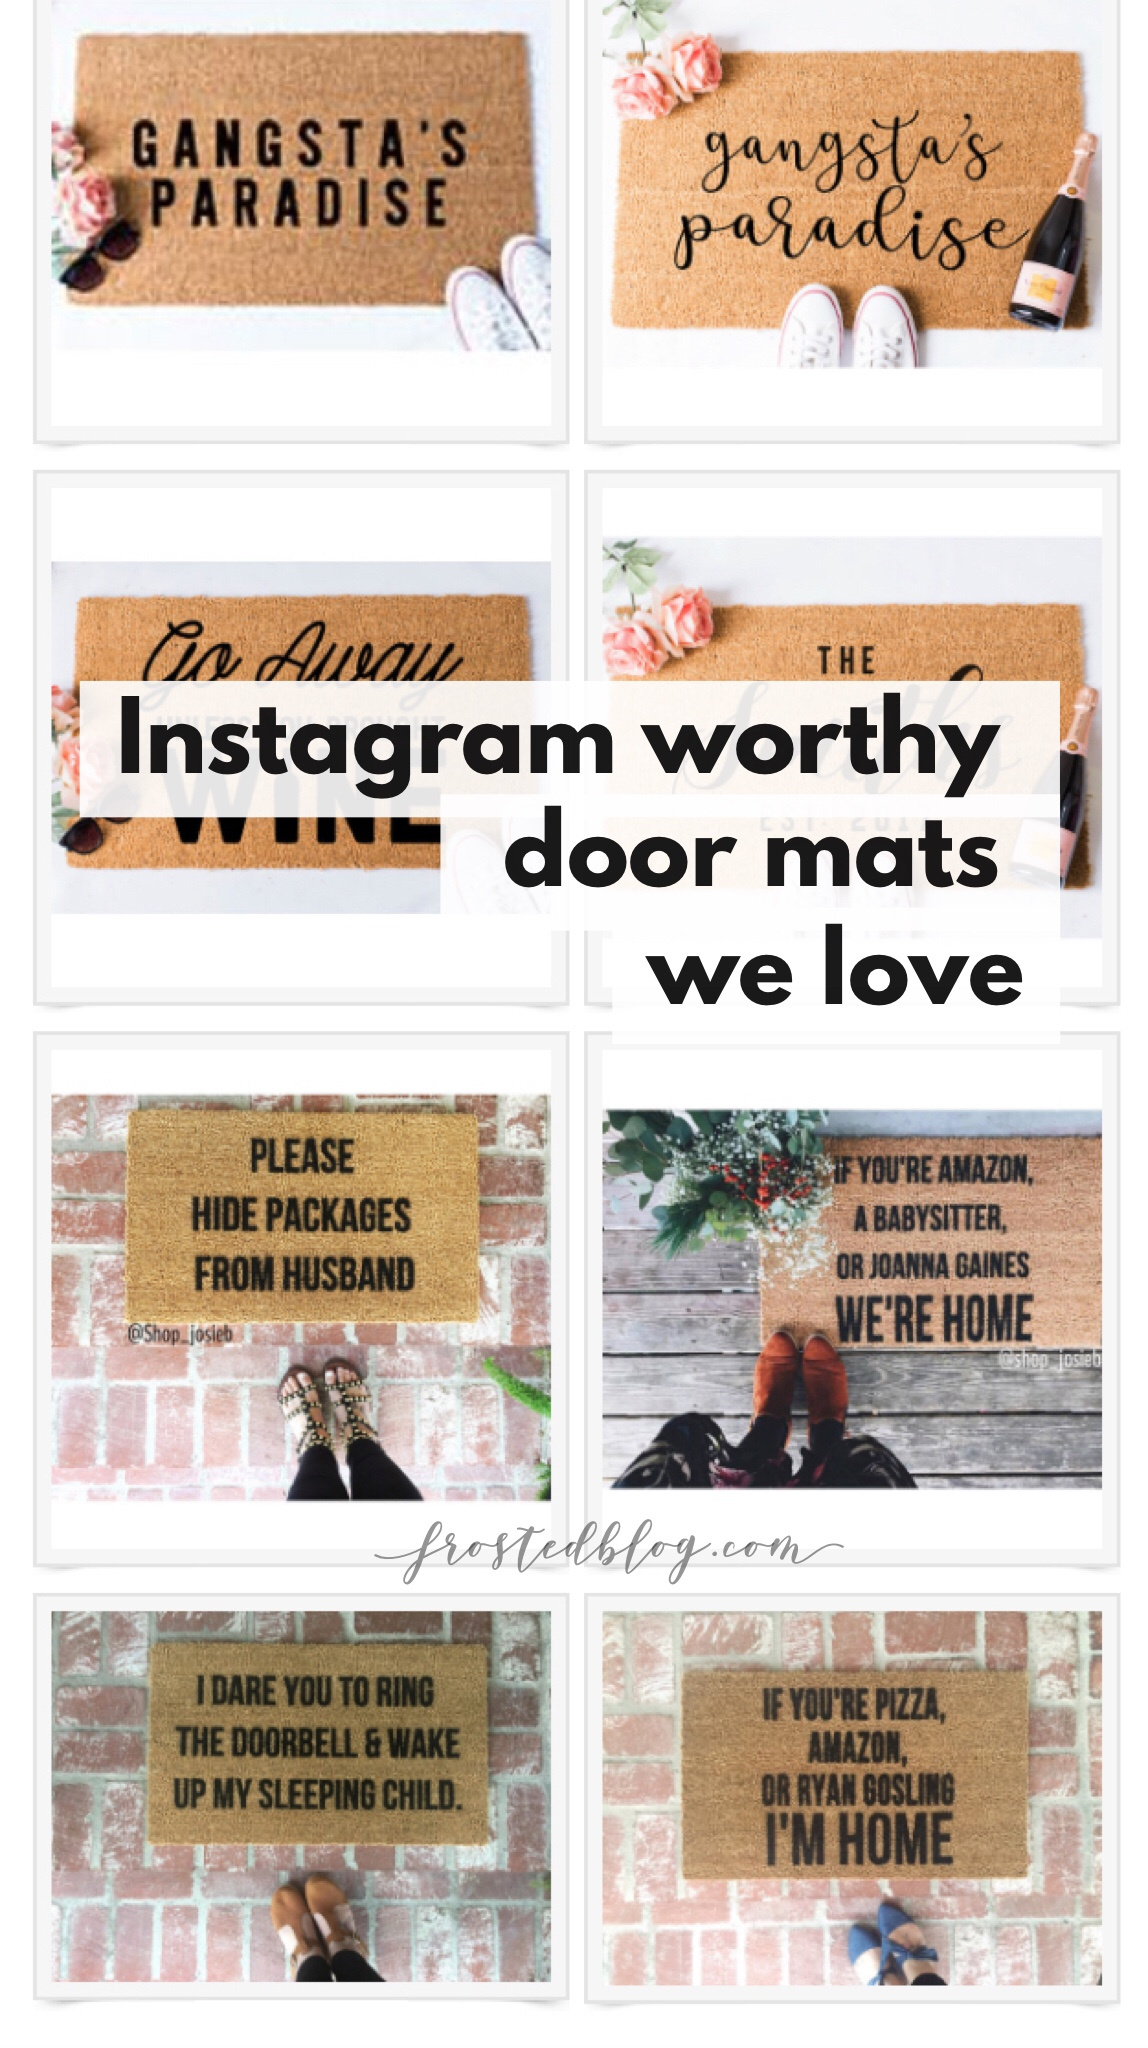 Home decor - funny custom door mats and welcome mats Instagram via misty Nelson, Frostedblog